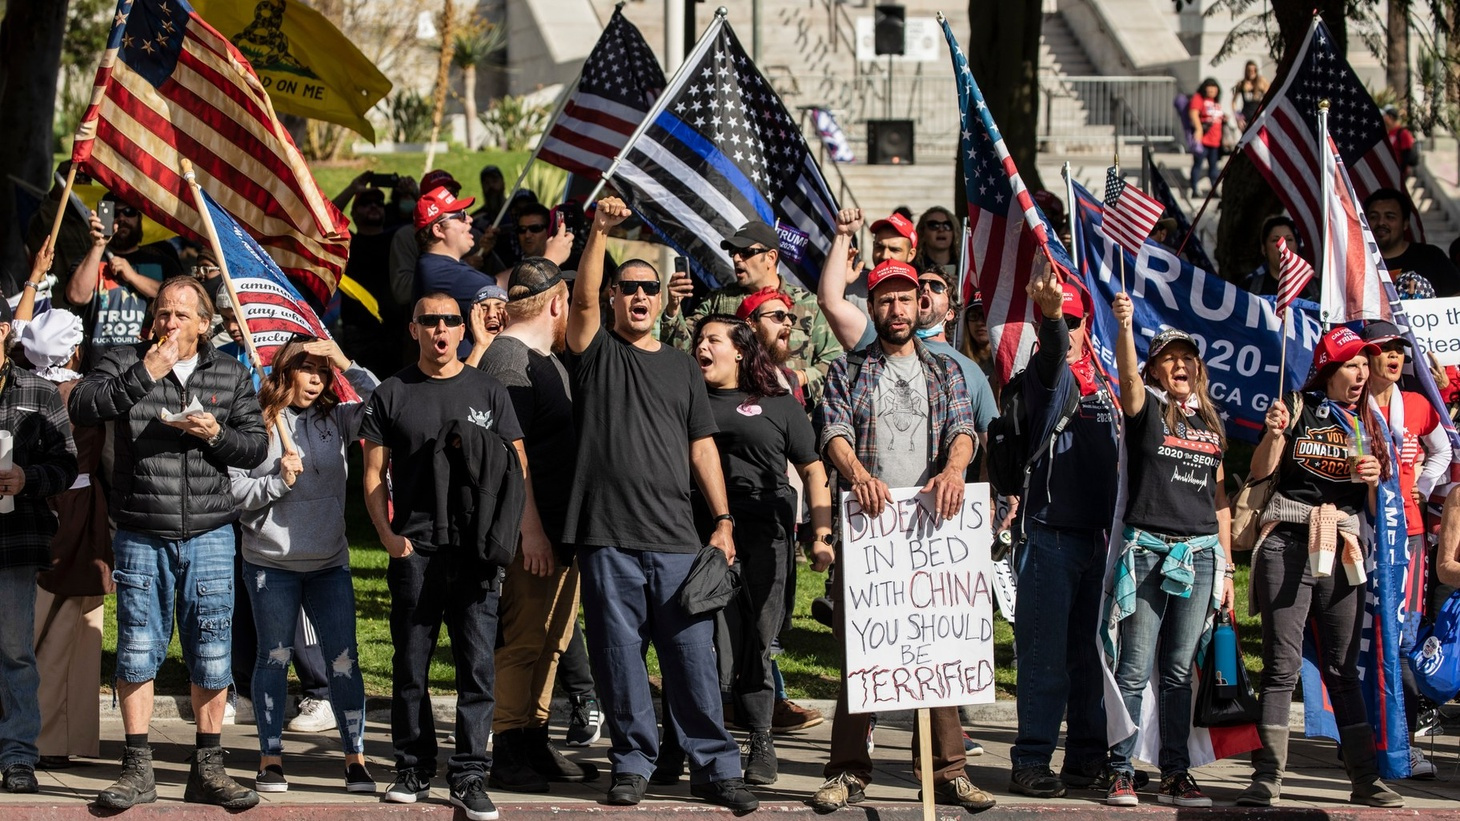 Unmasked Trump supporters brought signs and flags to a rally in downtown LA on Jan. 6, 2021, the day insurrectionists stormed the U.S. Capitol.